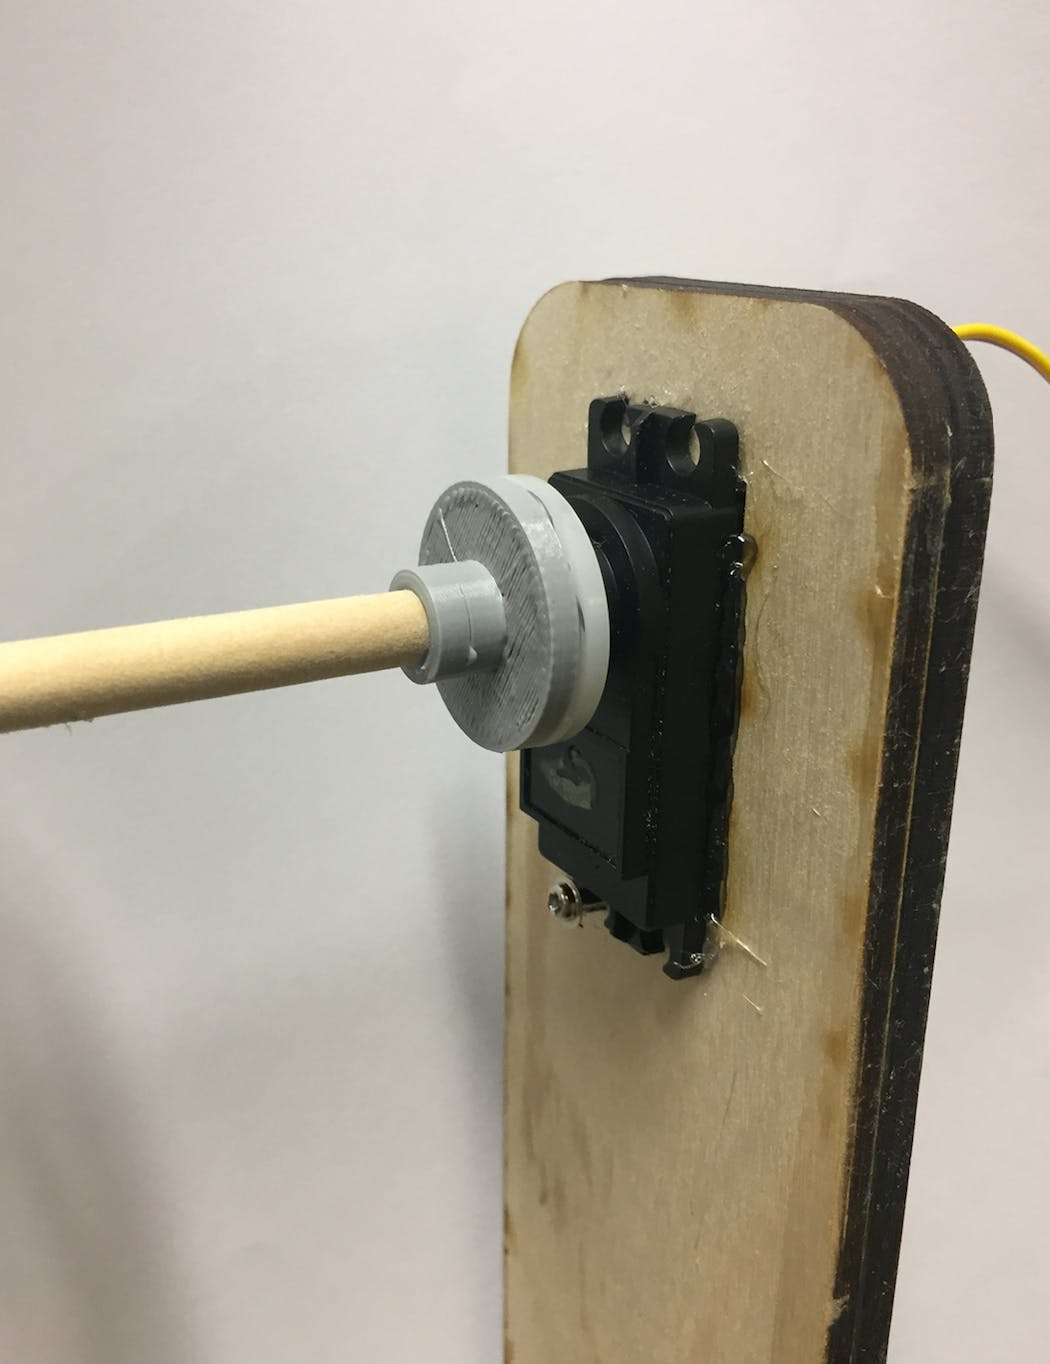 3D printed adapter connecting axle to servo